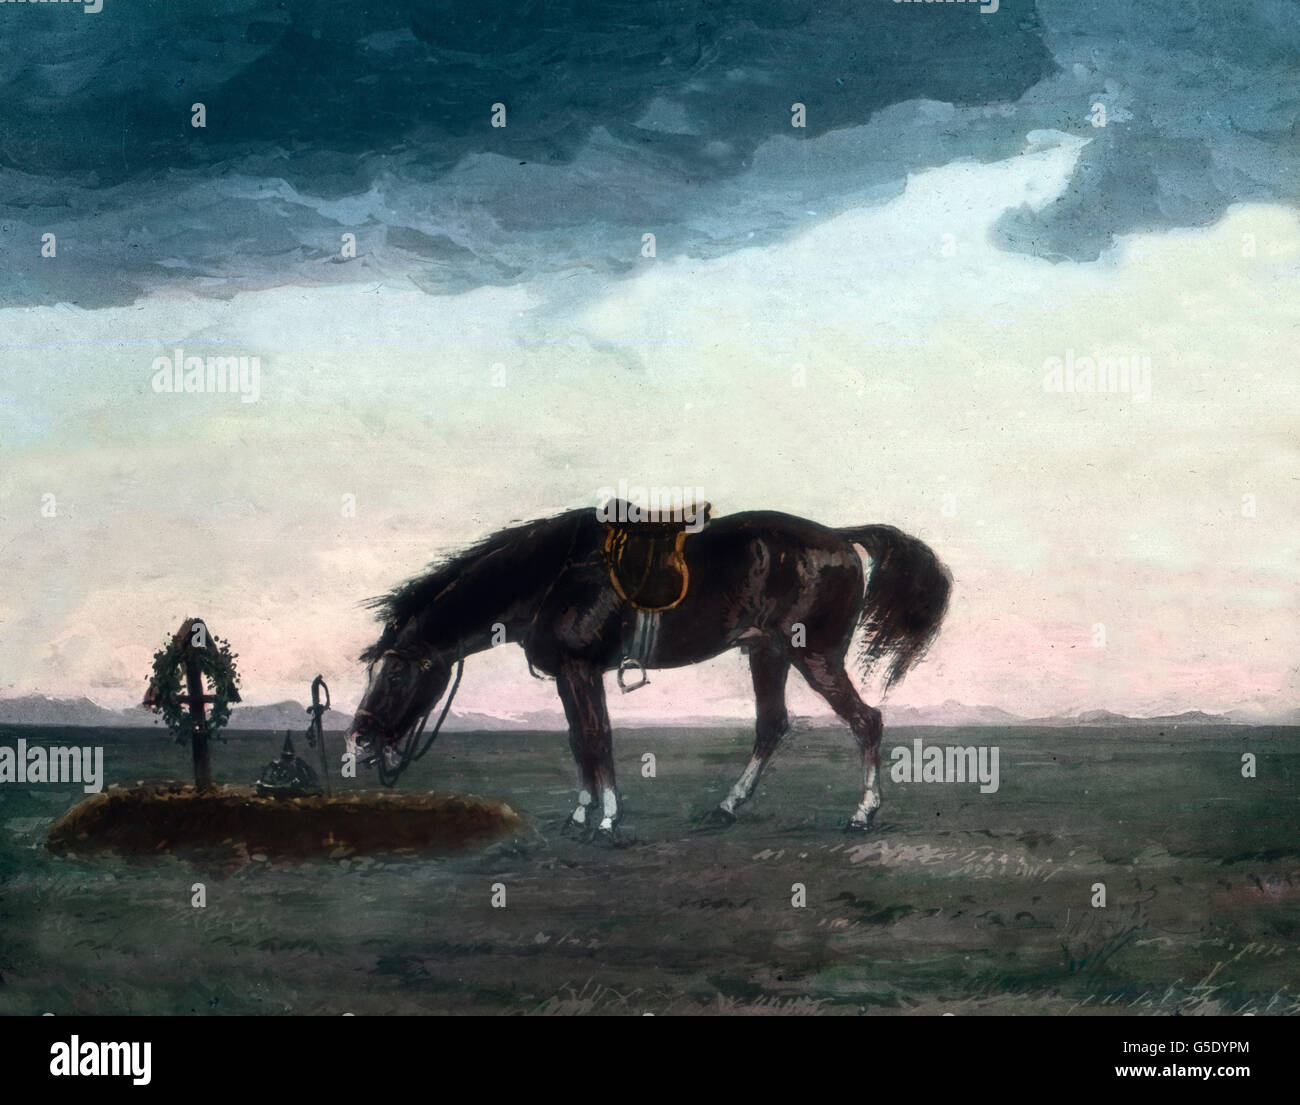 Ein Pferd am Grab seines Reiters. A horse at its rider's grave. Germany, war, World War, WWI, 1, history, historical, - Stock Image